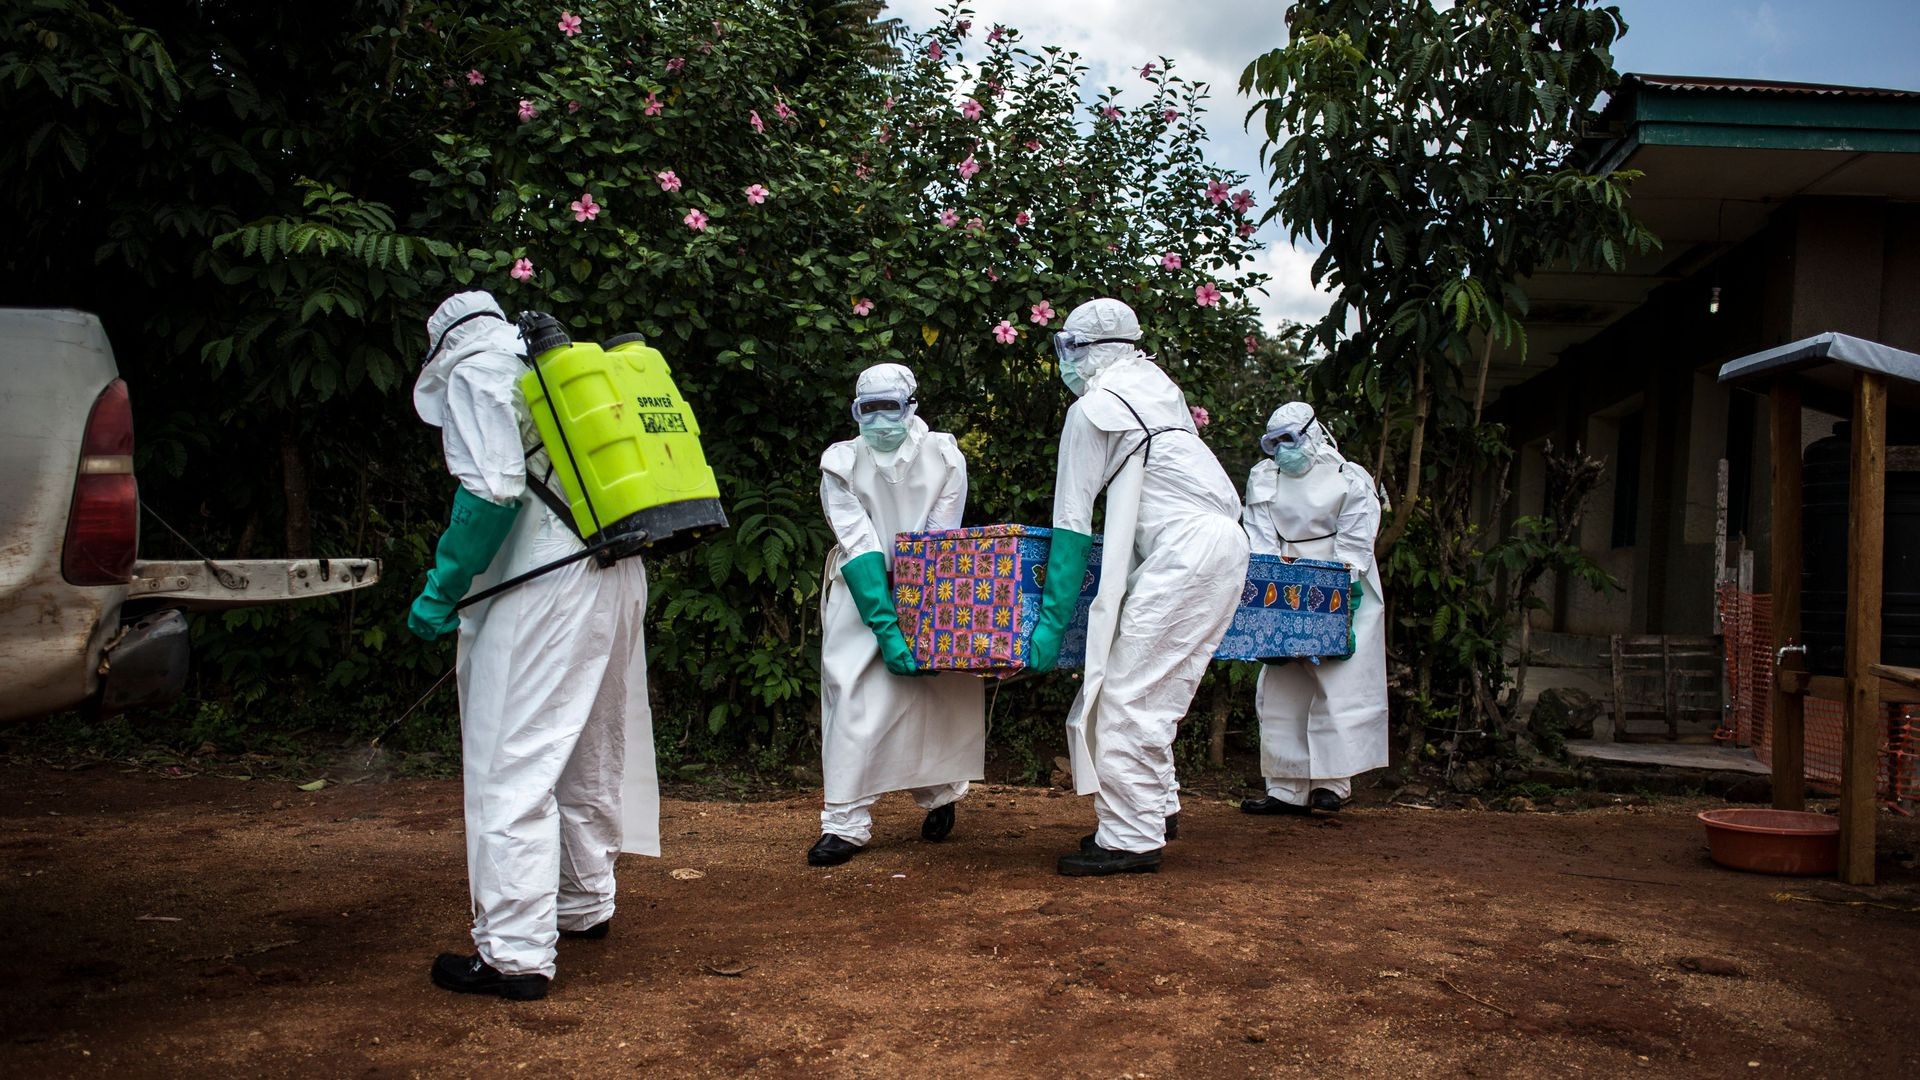 Doctors in hazmat suits in the Congo.